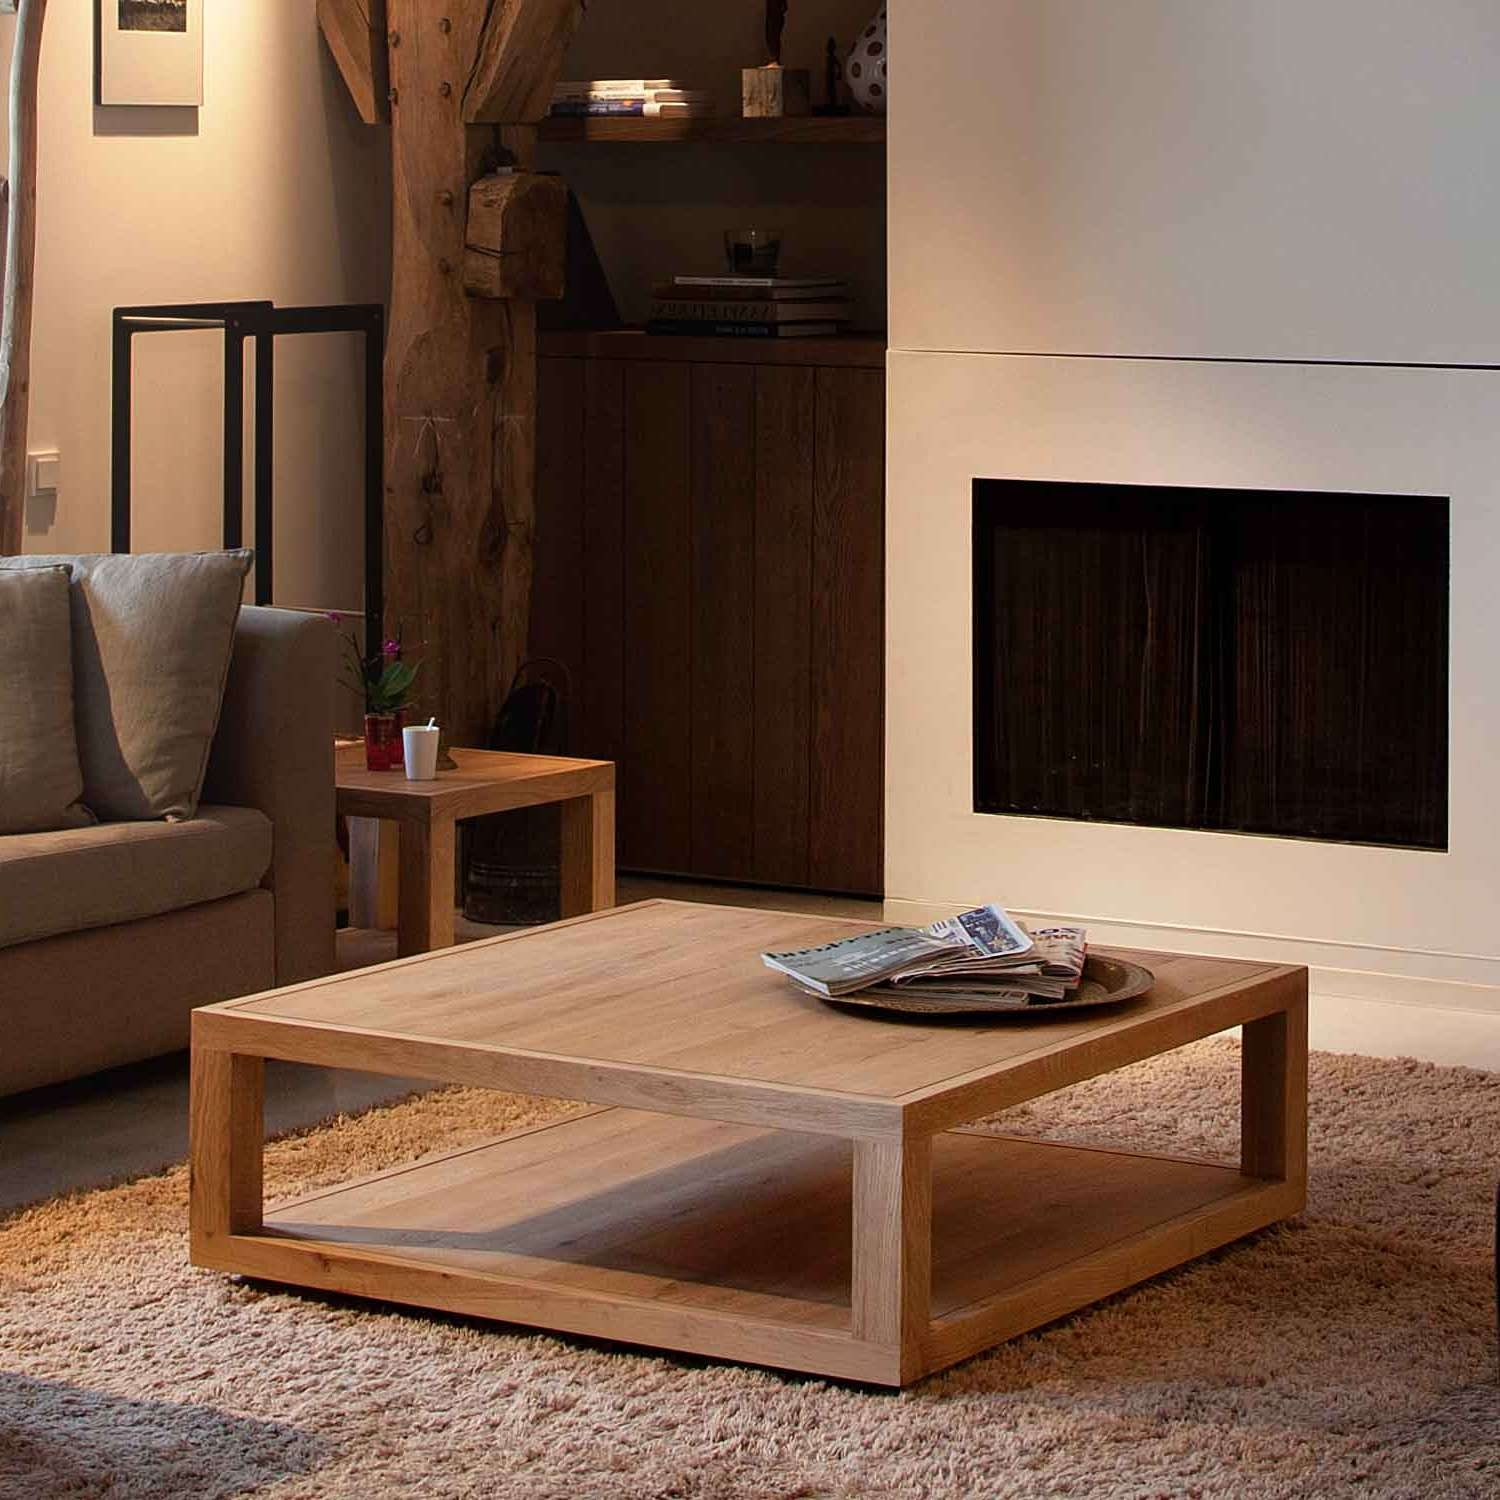 Custom Diy Low Square Wood Oak Coffee Table With Tray And Pertaining To Recent Square Wood Coffee Tables With Storage (View 11 of 20)